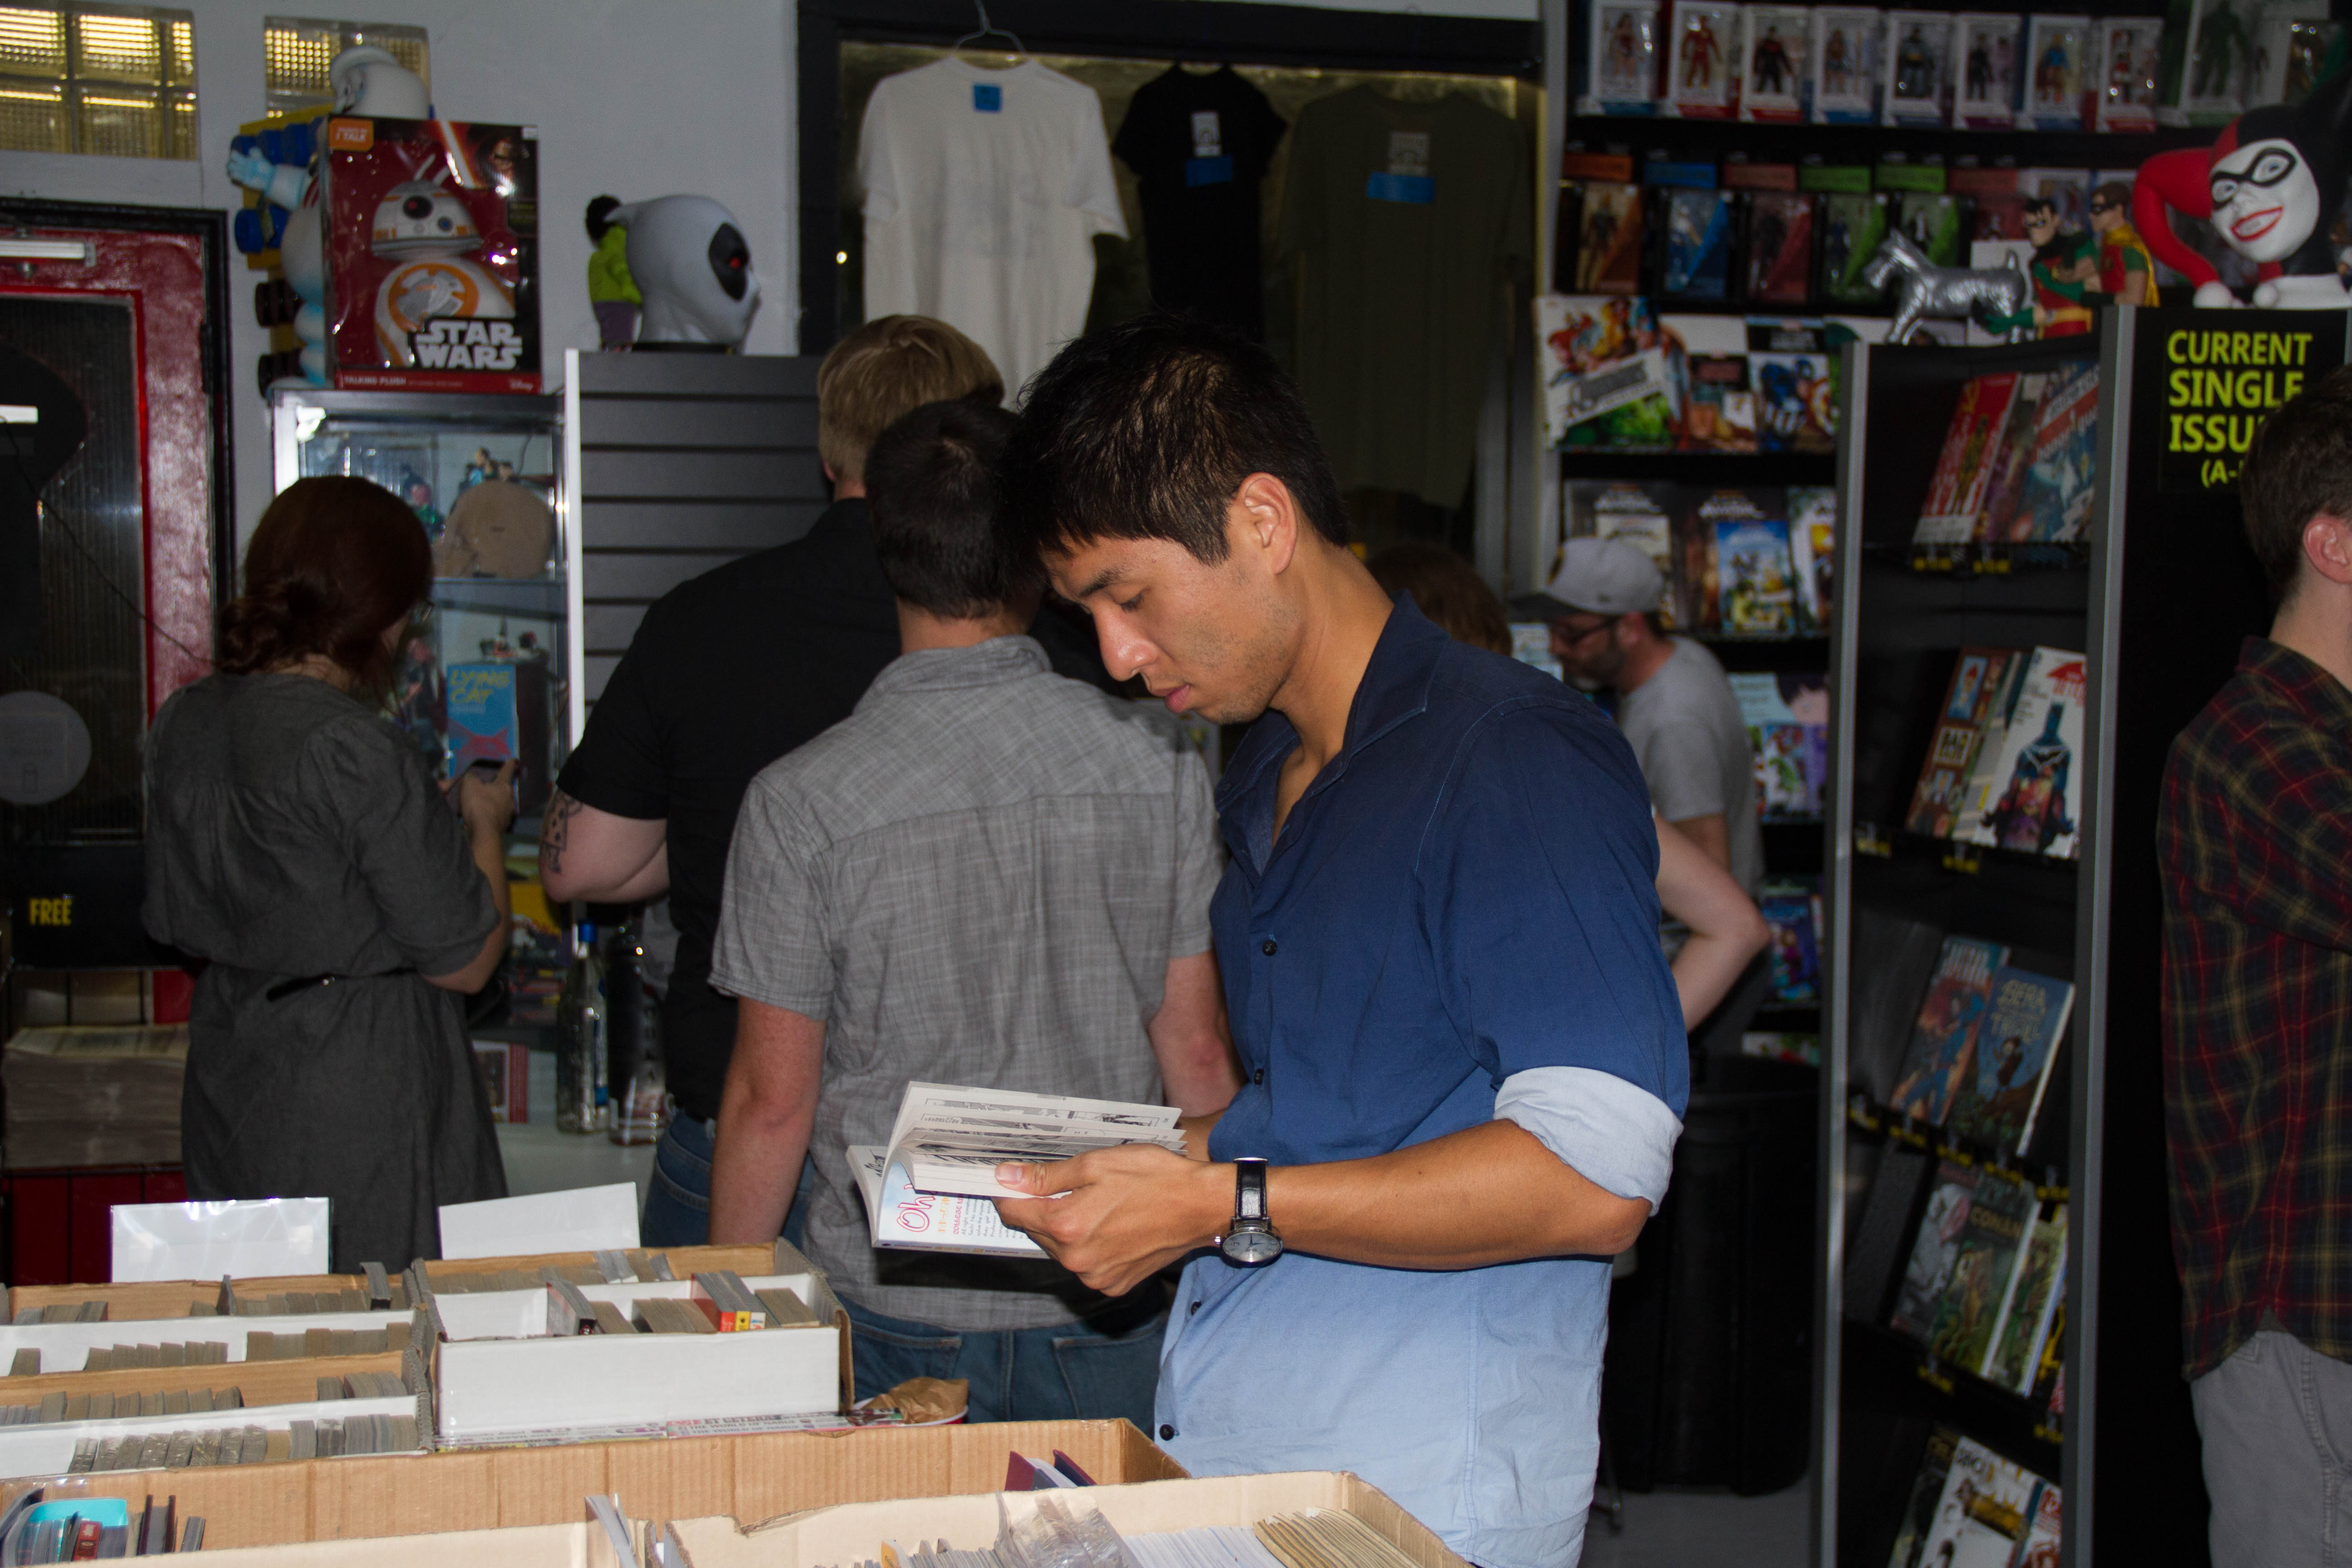 Michael Ho looks through some of the Manga included in the sidewalk sale for $3.